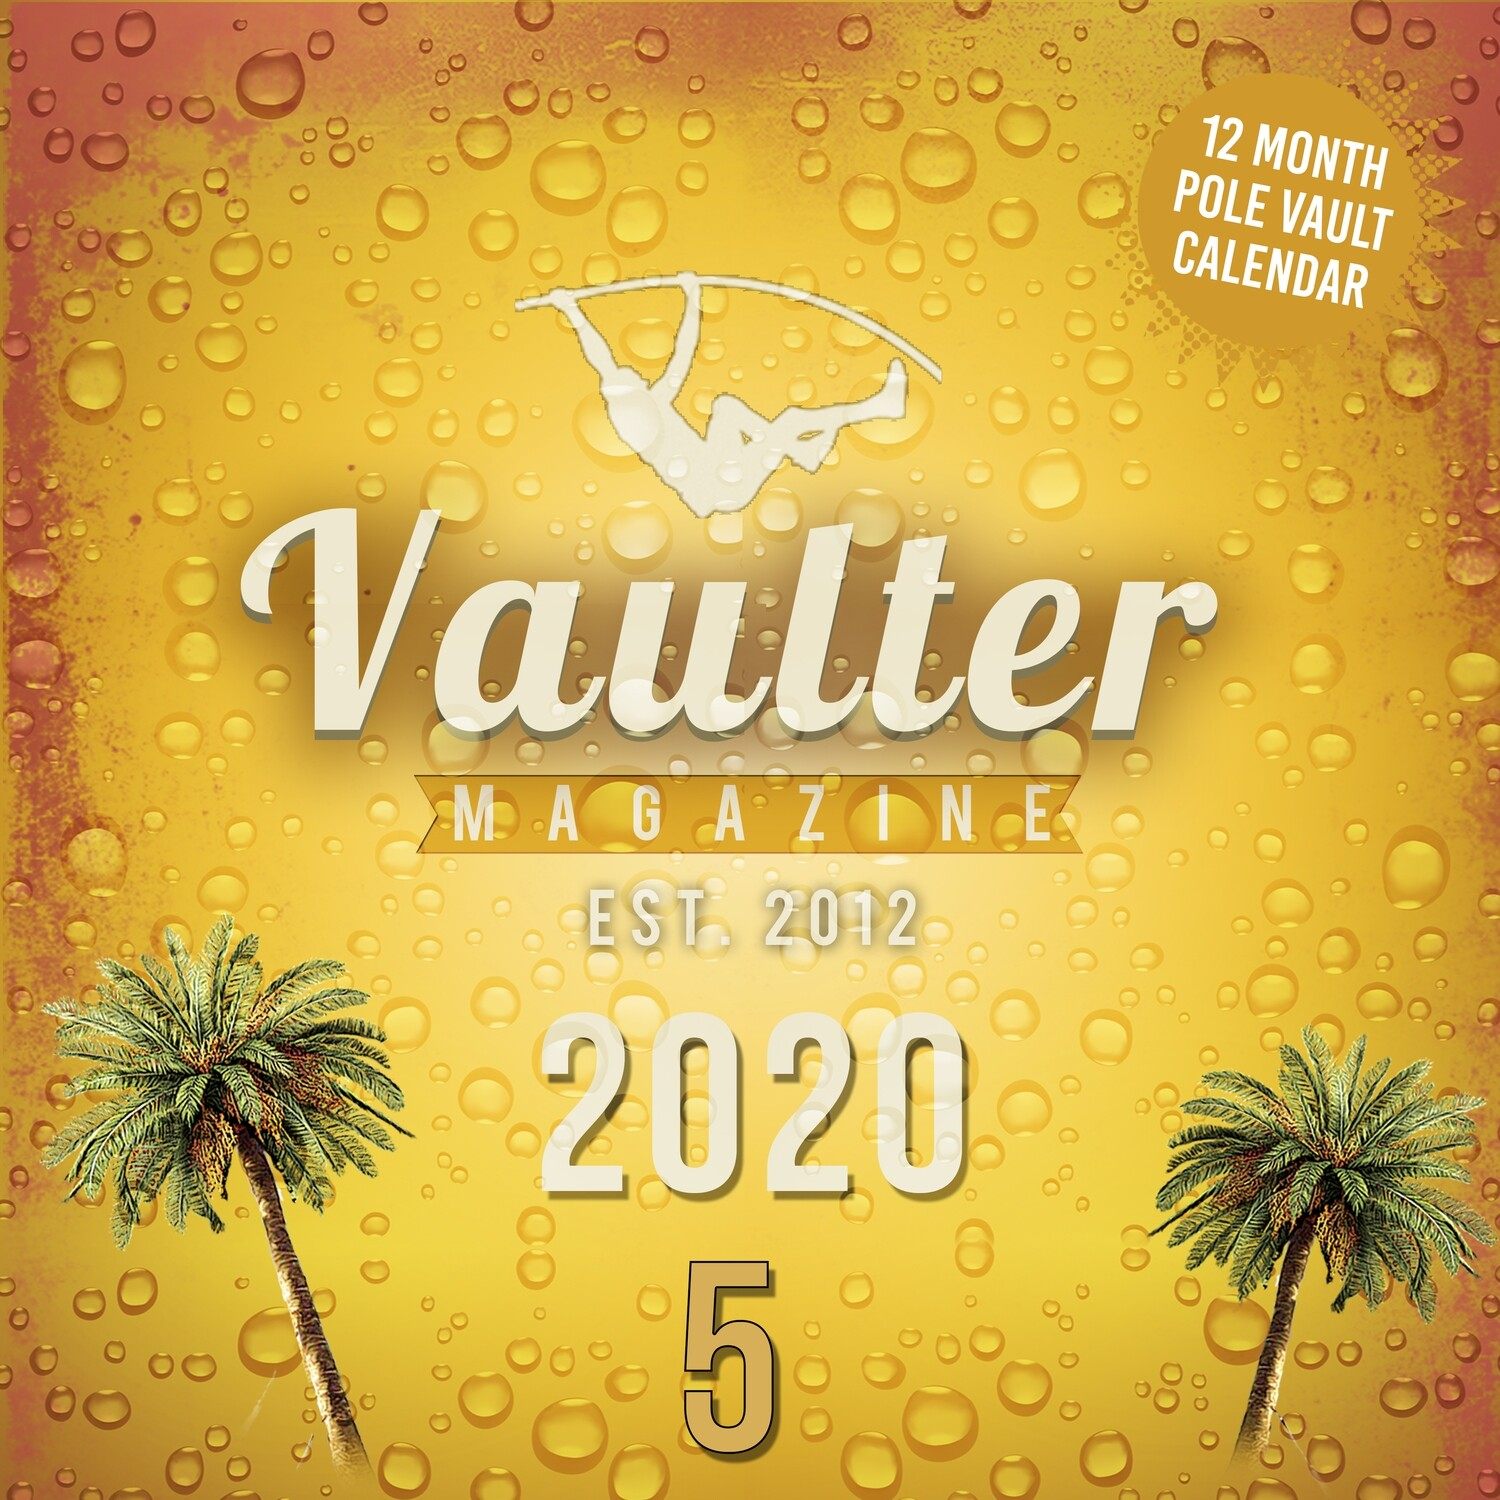 2020 Vaulter Magazine Series FIVE Calendar